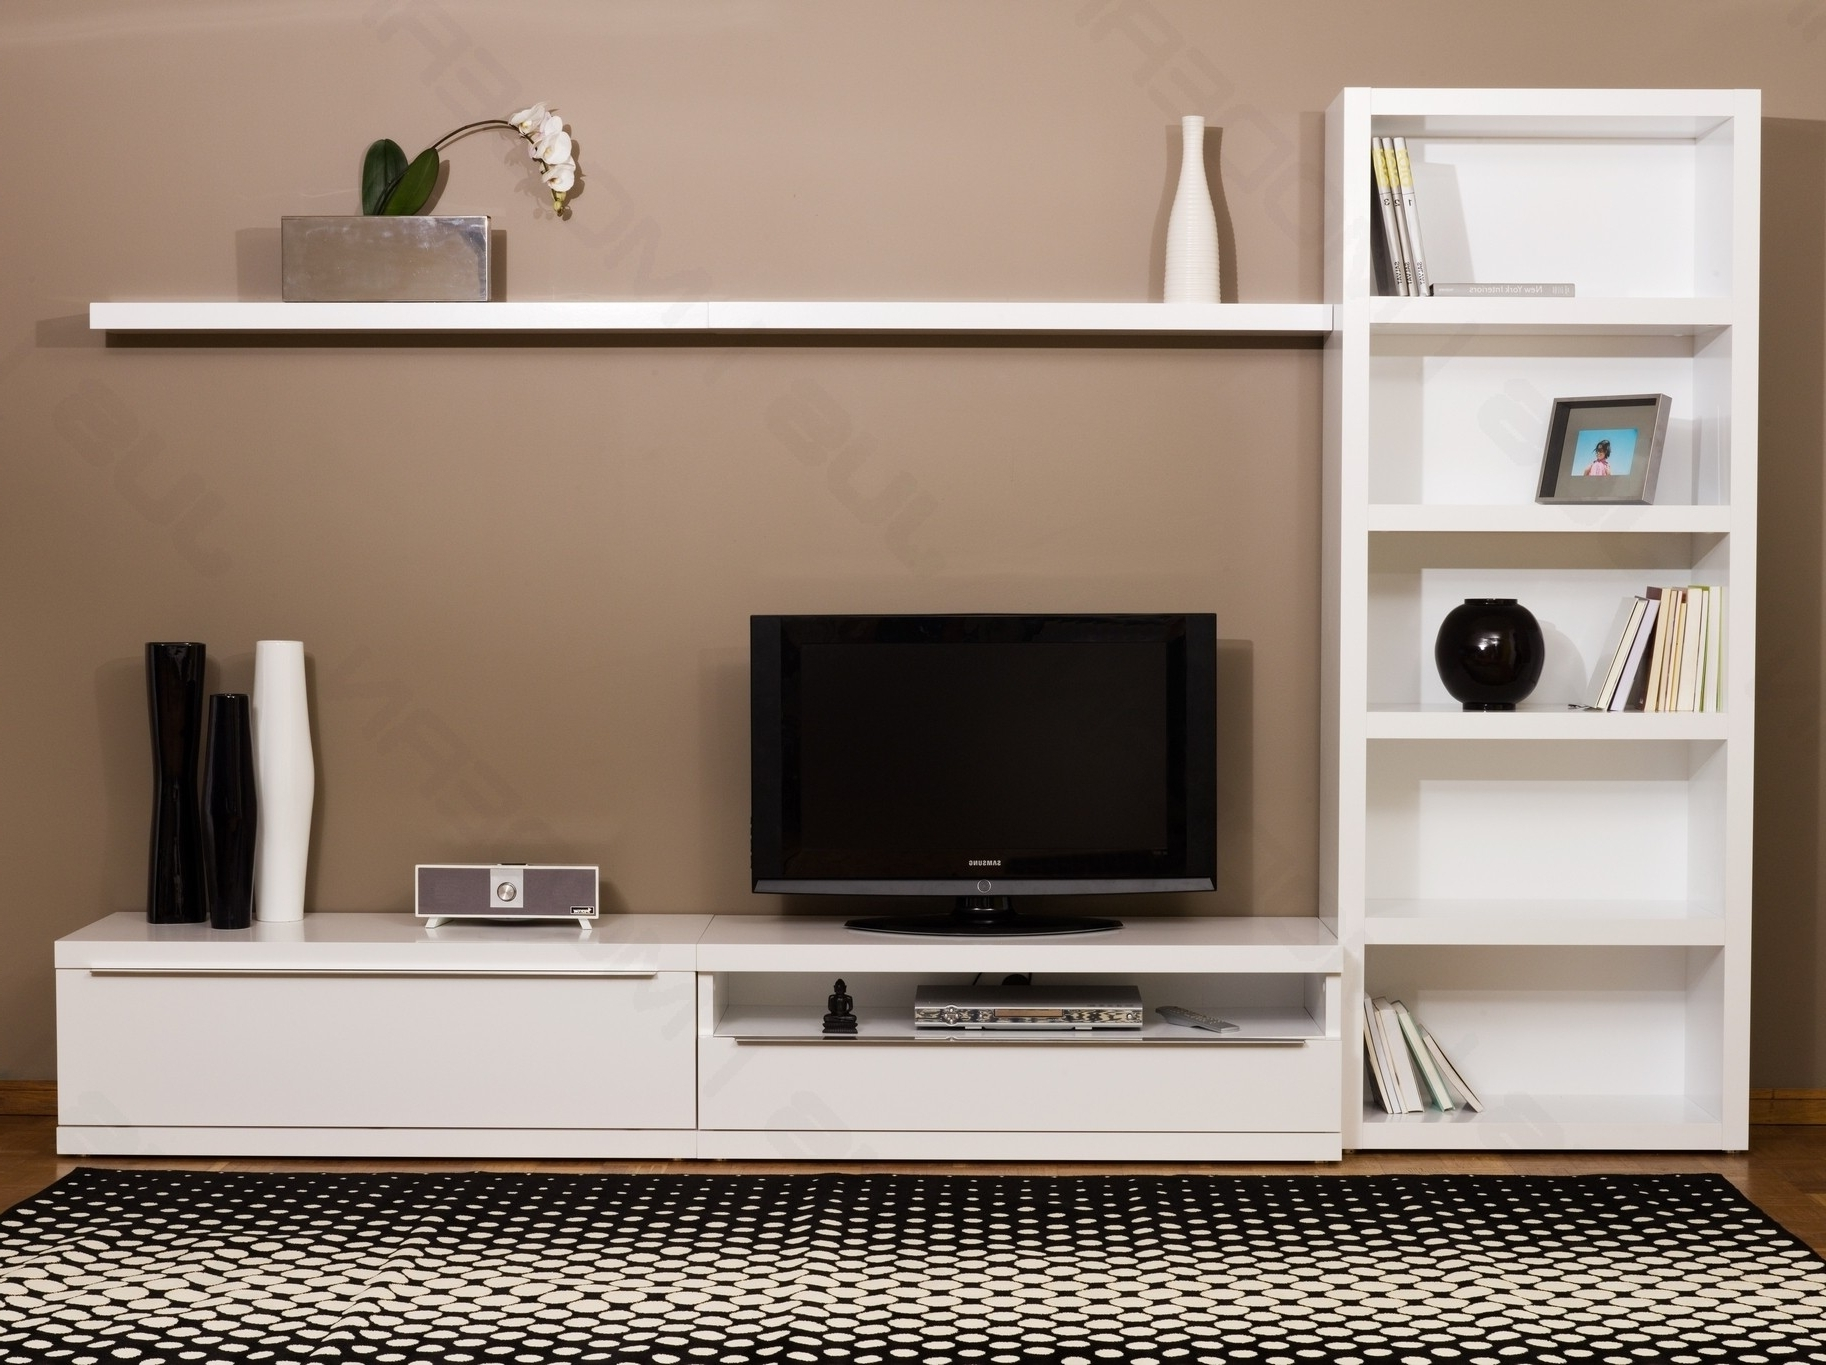 Tv Corner Shelf Unit Regarding Popular Wall Mounted Tv Stands Minimalist Stand An Trends Including (View 11 of 15)